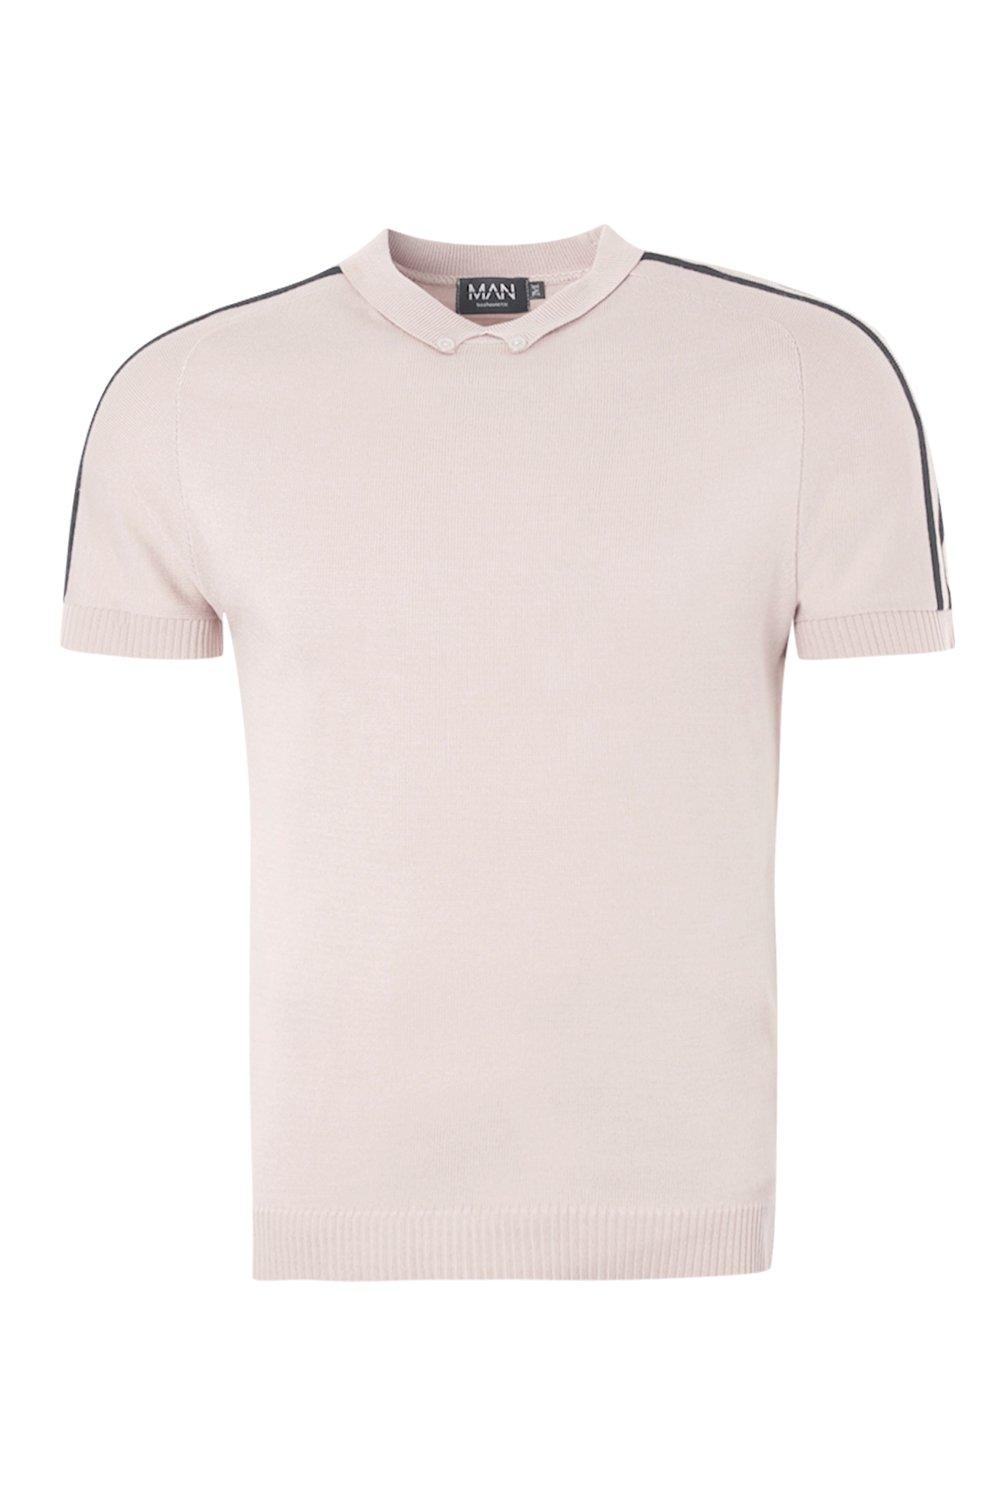 boohooMAN taupe Muscle Fit Knitted Raglan Polo With Shoulder Stripe